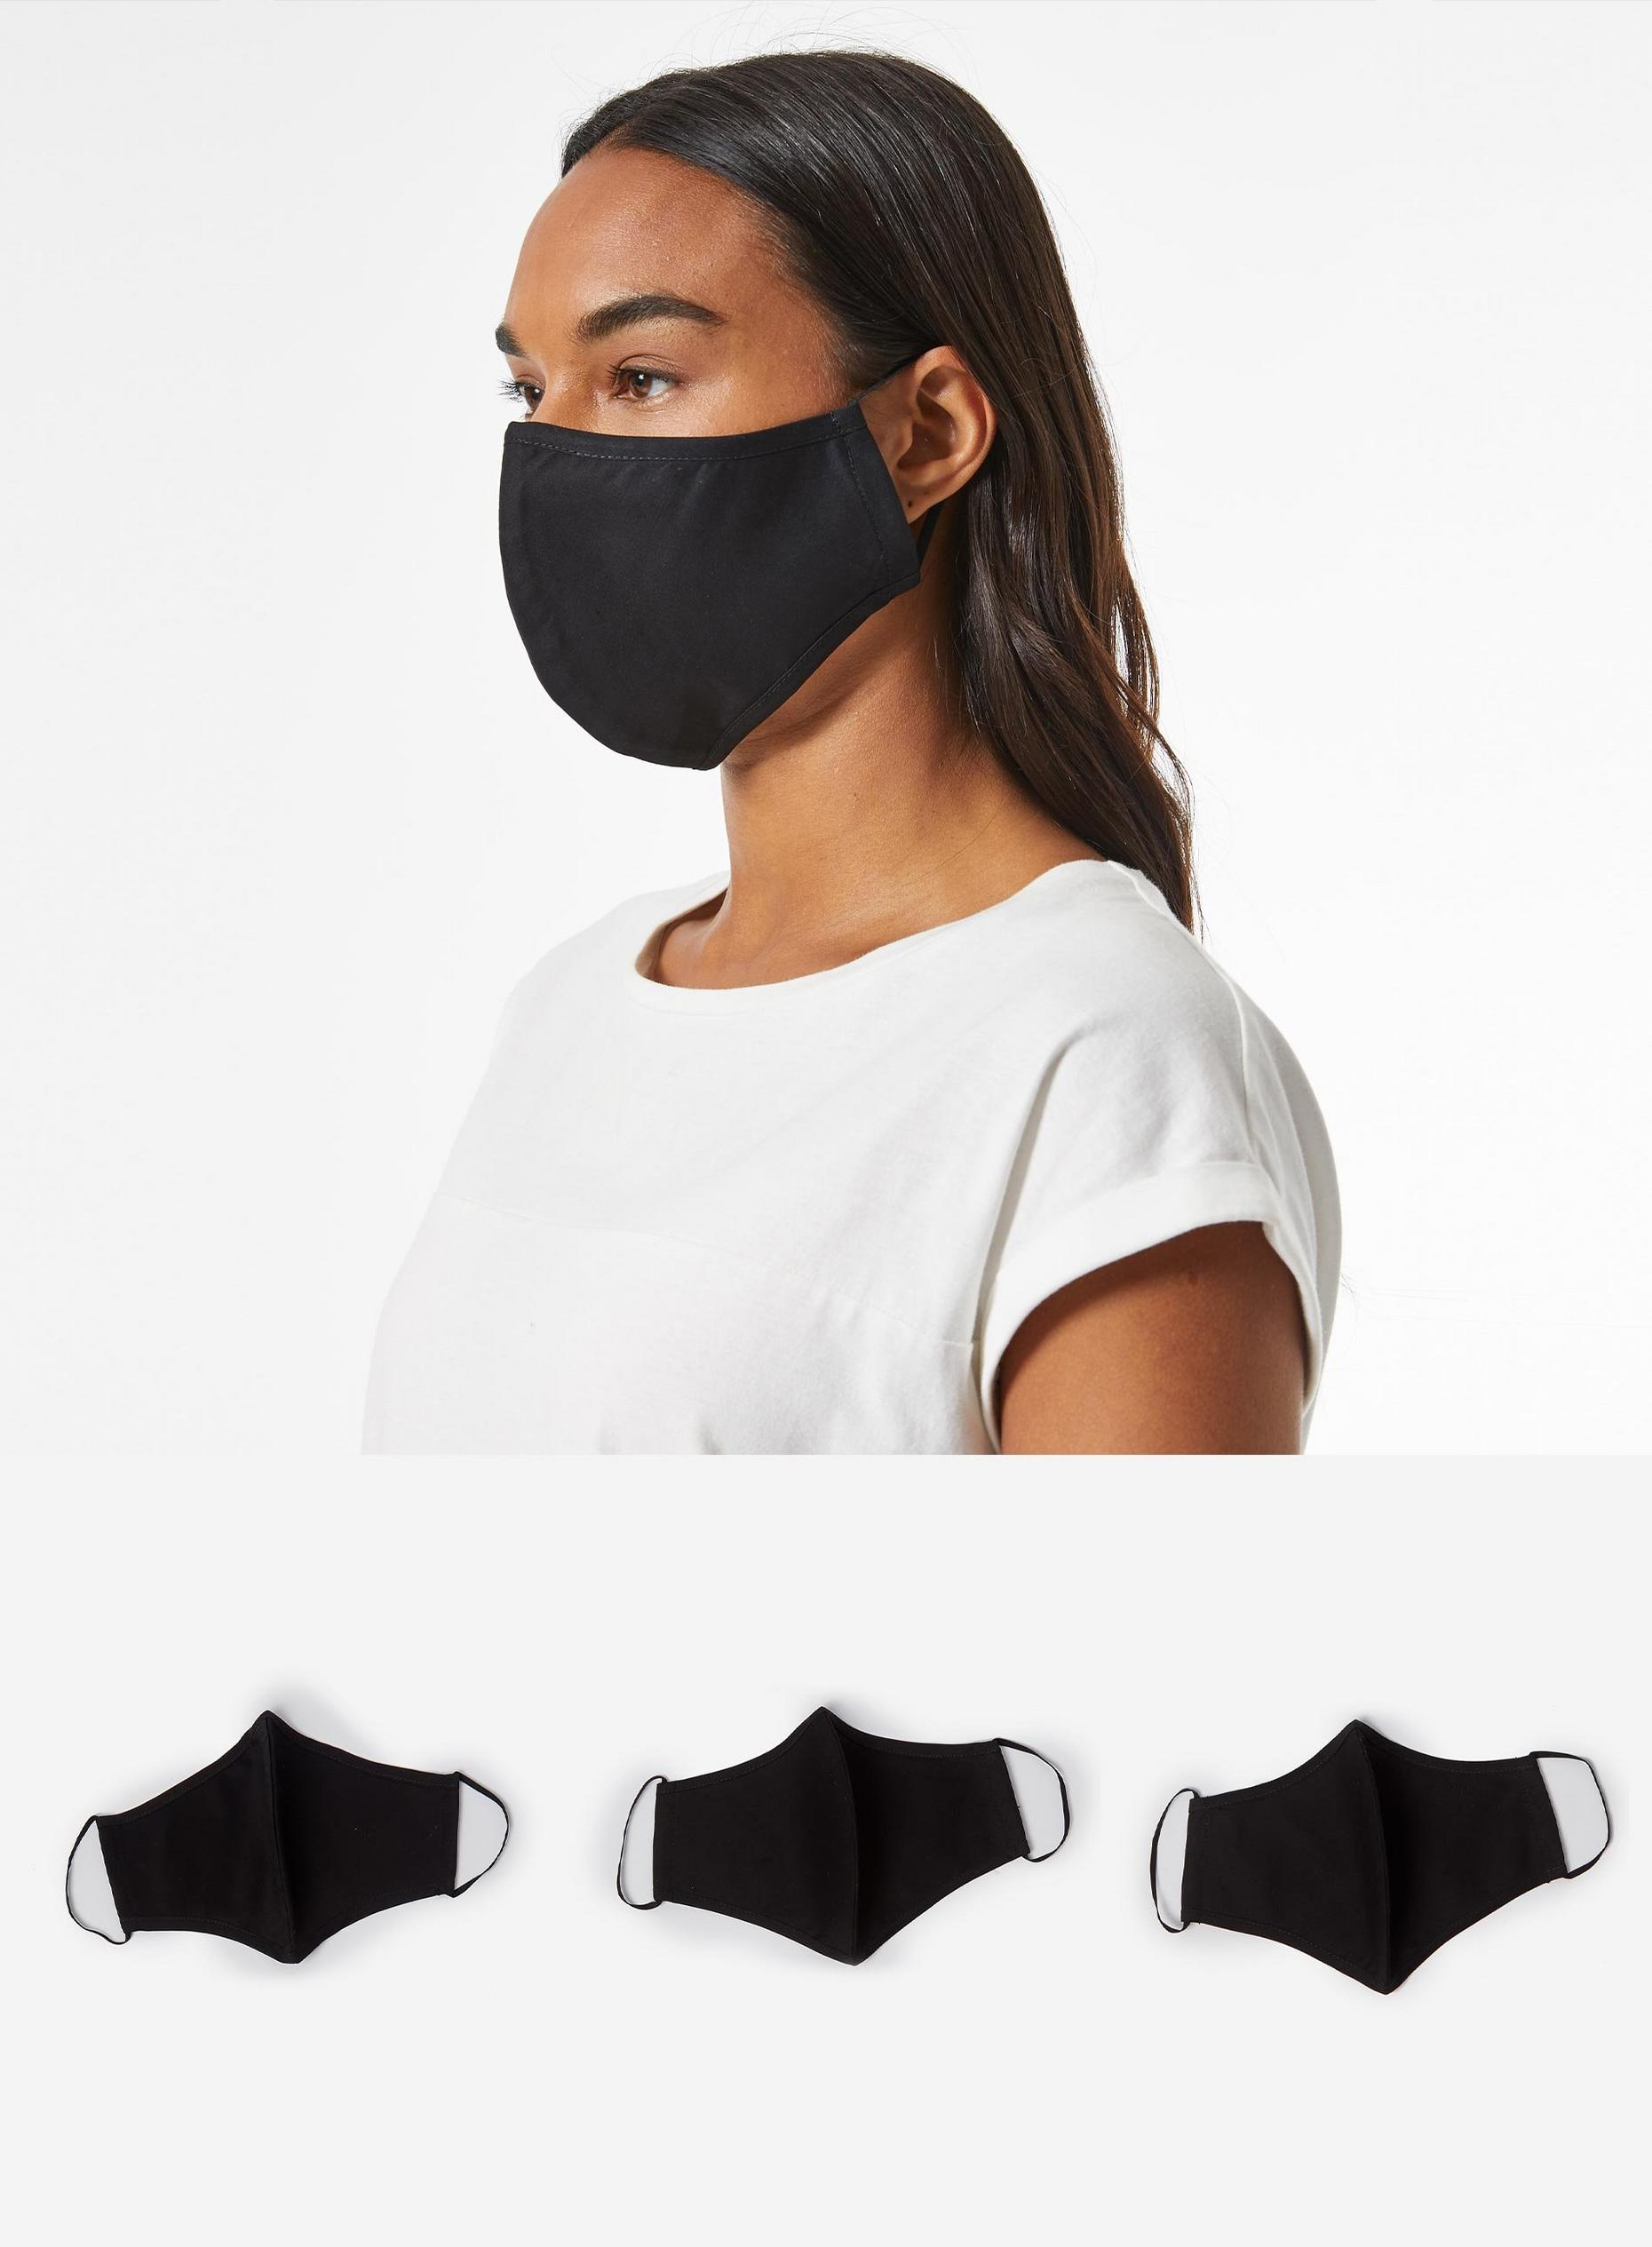 Plain Black 3 Pack Reusable Face Coverings